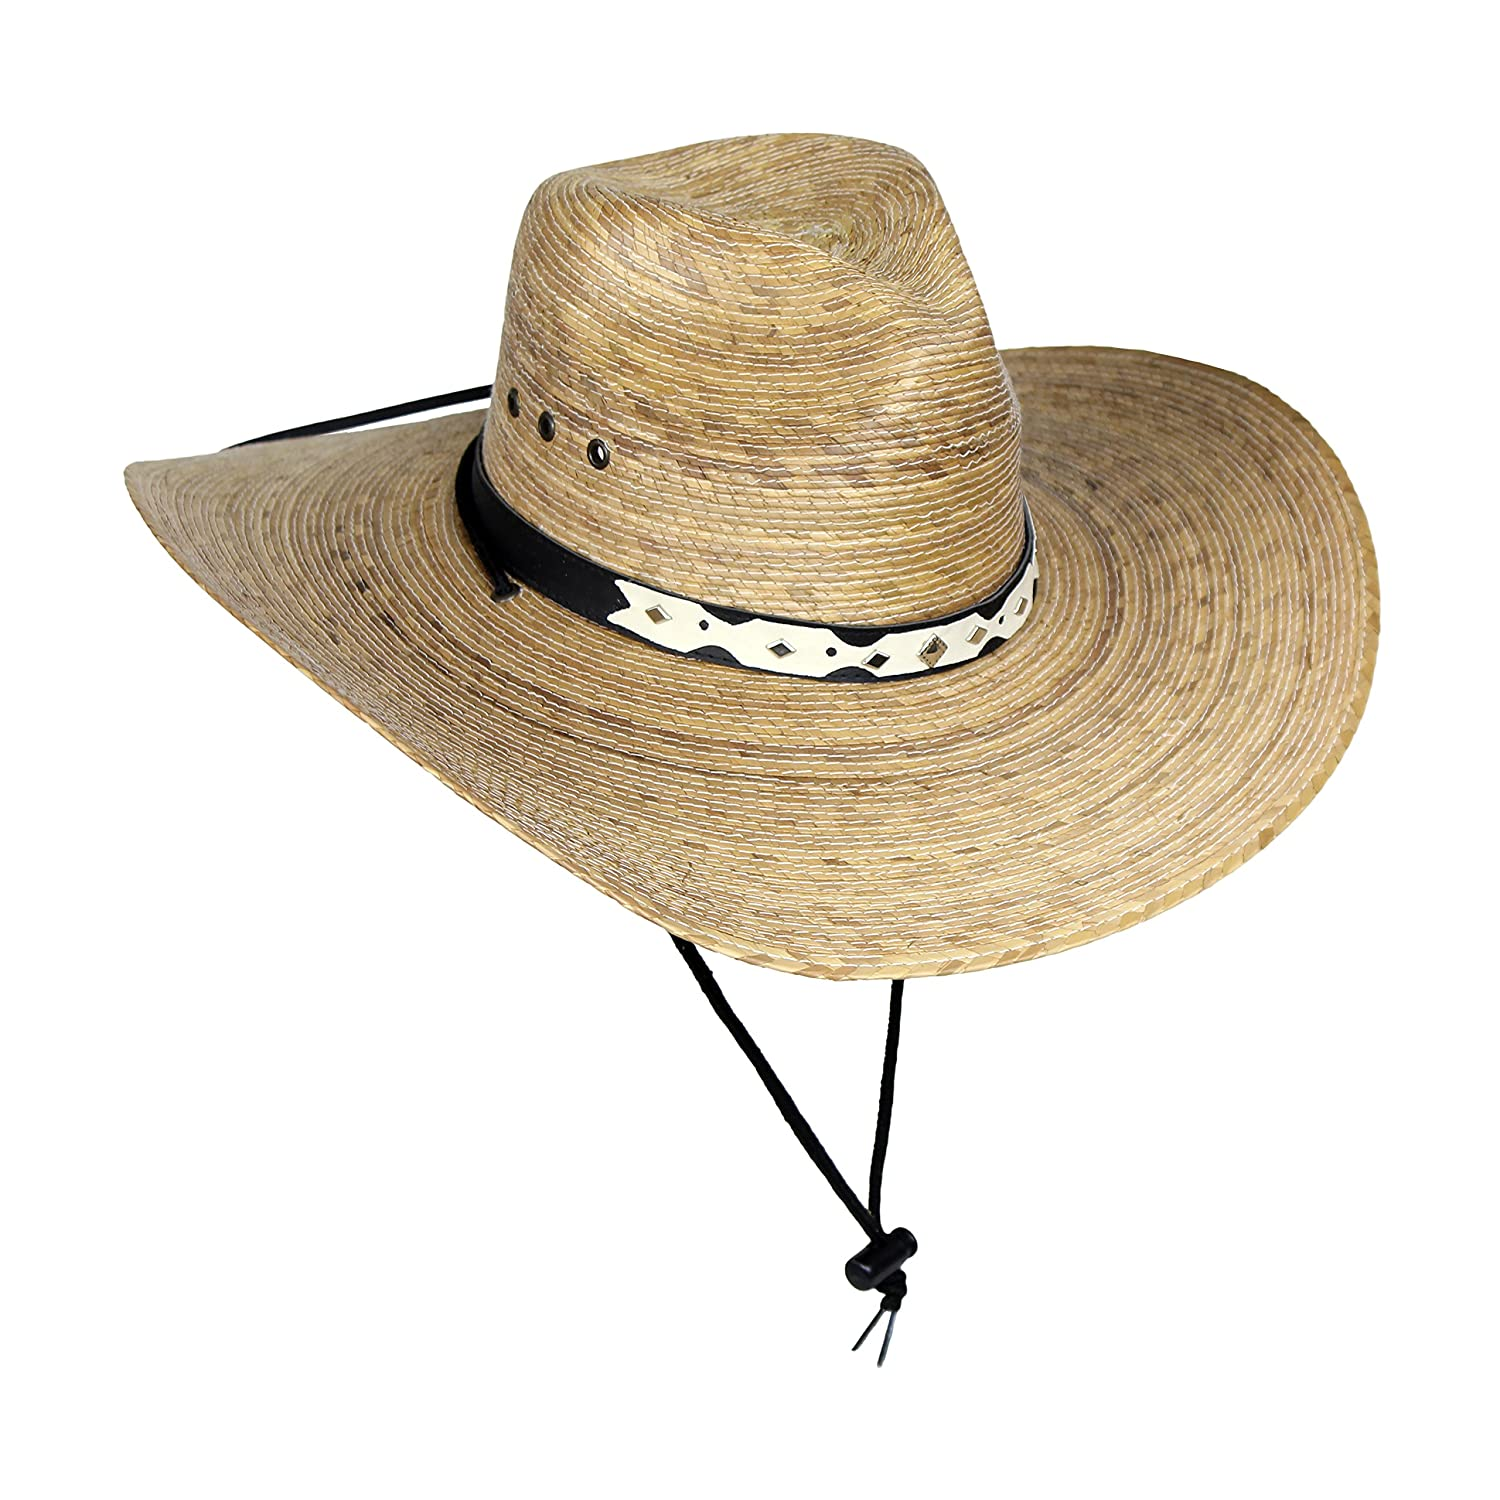 Amazon.com  MWS Large Mexican Palm Leaf Cowboy Hat with Chin Strap ... e5149f8cec7